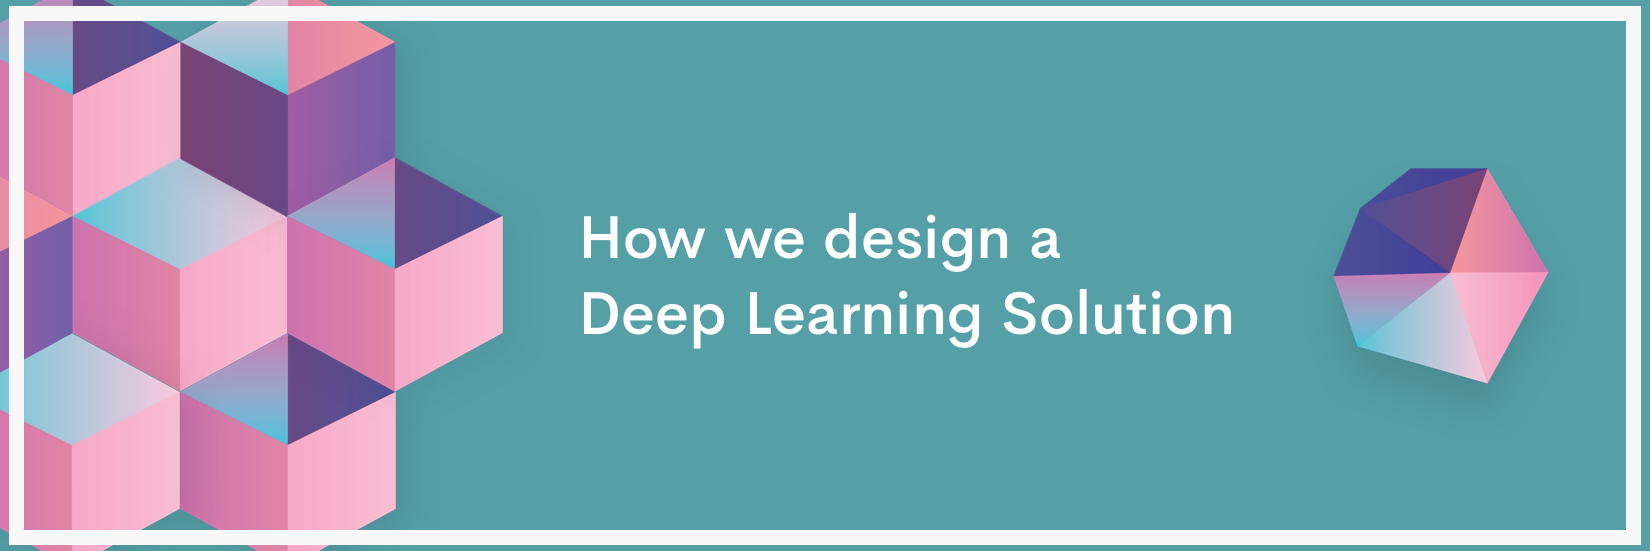 Deep Learning 101: How we design a Deep Learning Solution